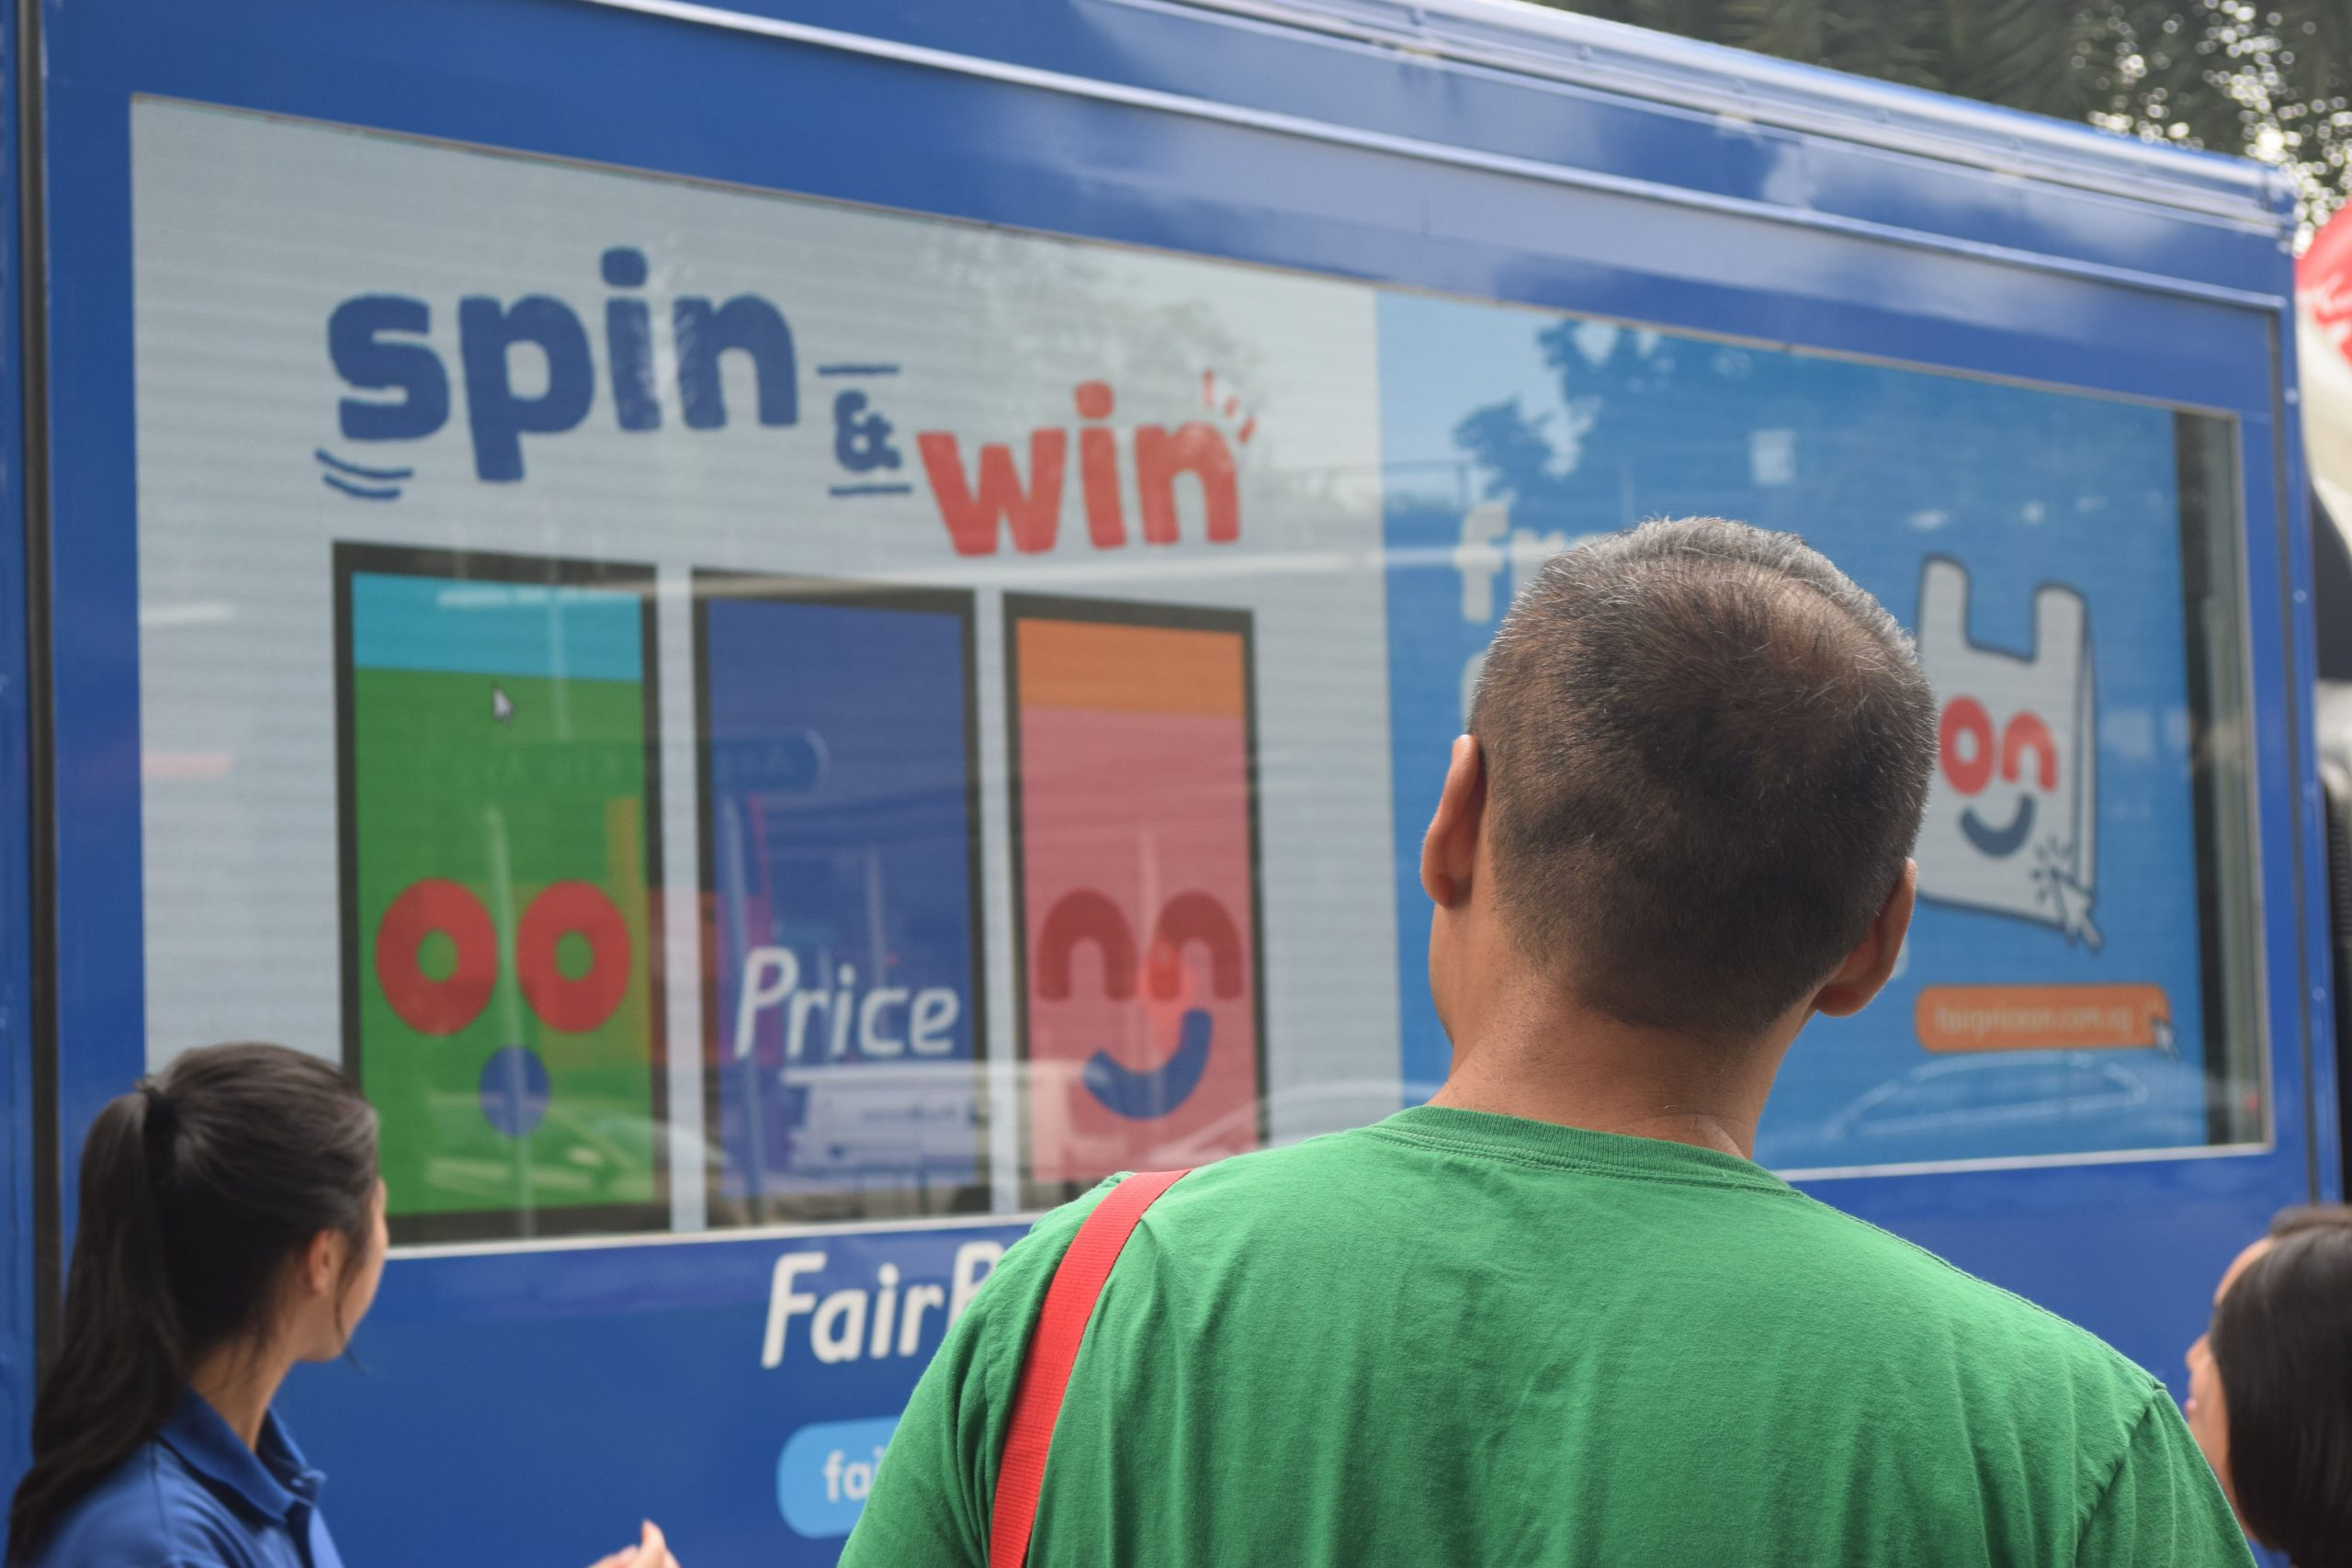 A man listens on as a brand ambassador explains to him how the fairprice on interactive spin and win game works